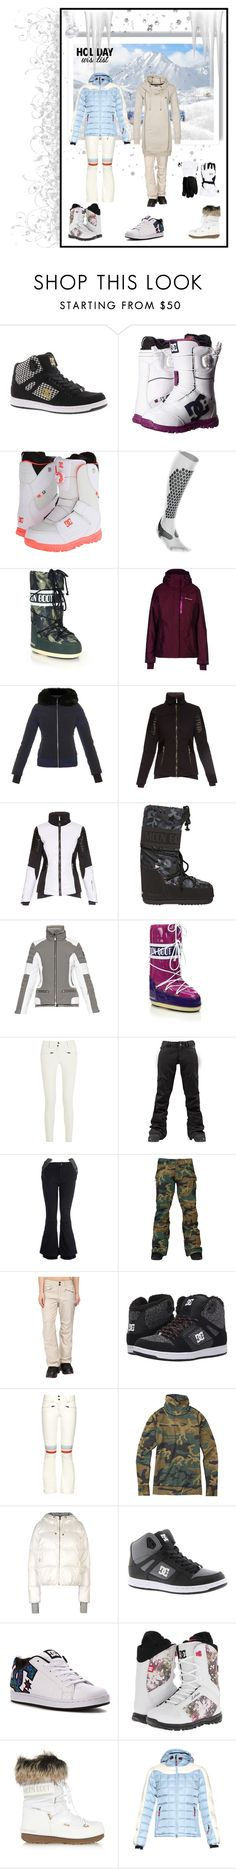 """Holliday Wish List 2015"" by misshollowpointslug ❤ liked on Polyvore featuring DC Shoes, 2XU, Moon Boot, Columbia, Fusalp, Christian Lacroix, Toni Sailer, Perfect Moment, Burton and adidas"